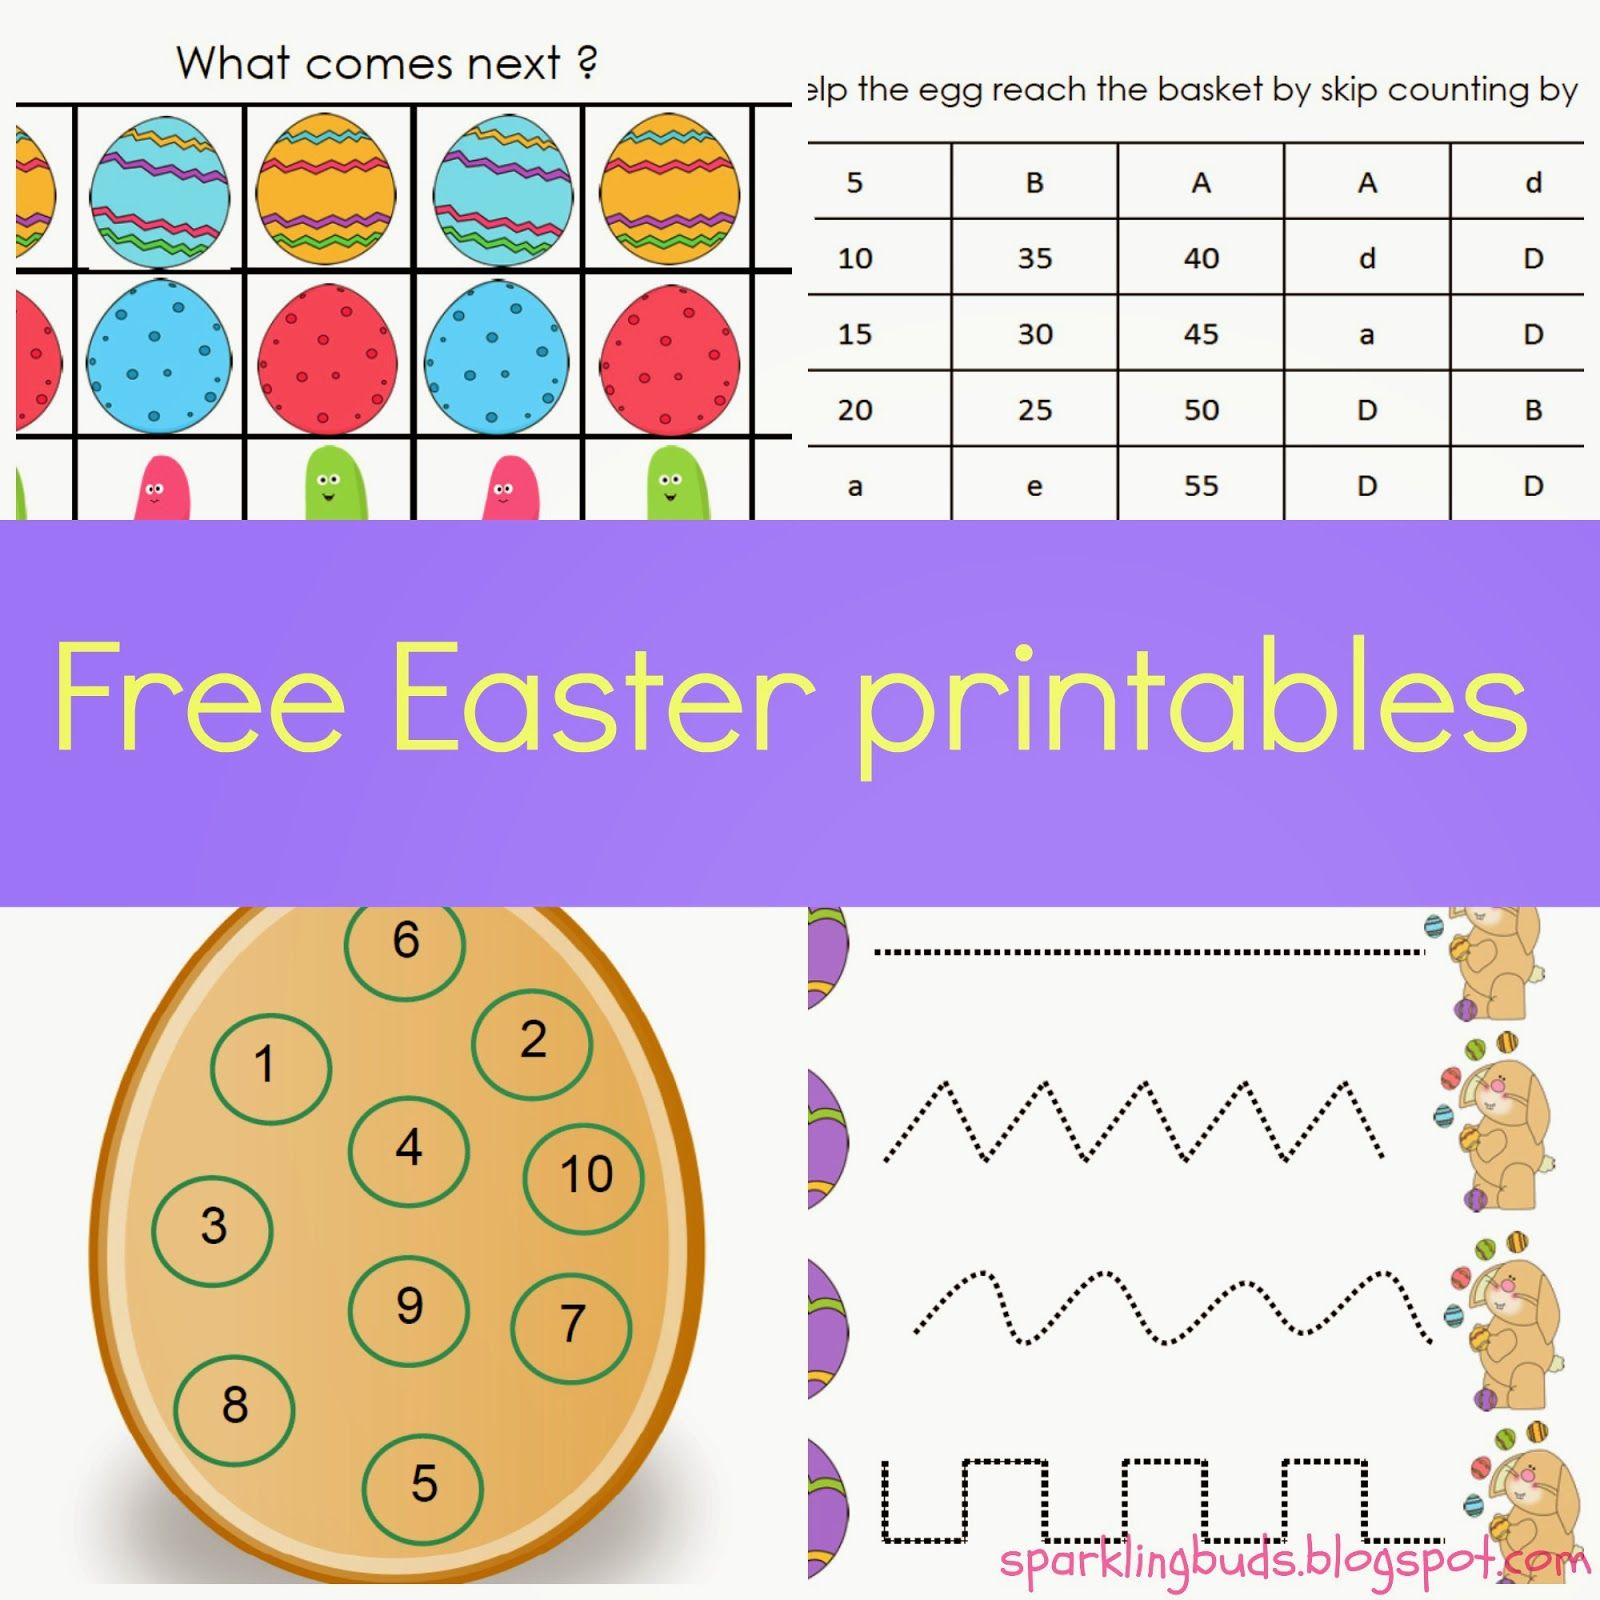 Free Easter Printables For Ages 3 6 From Sparkling Buds